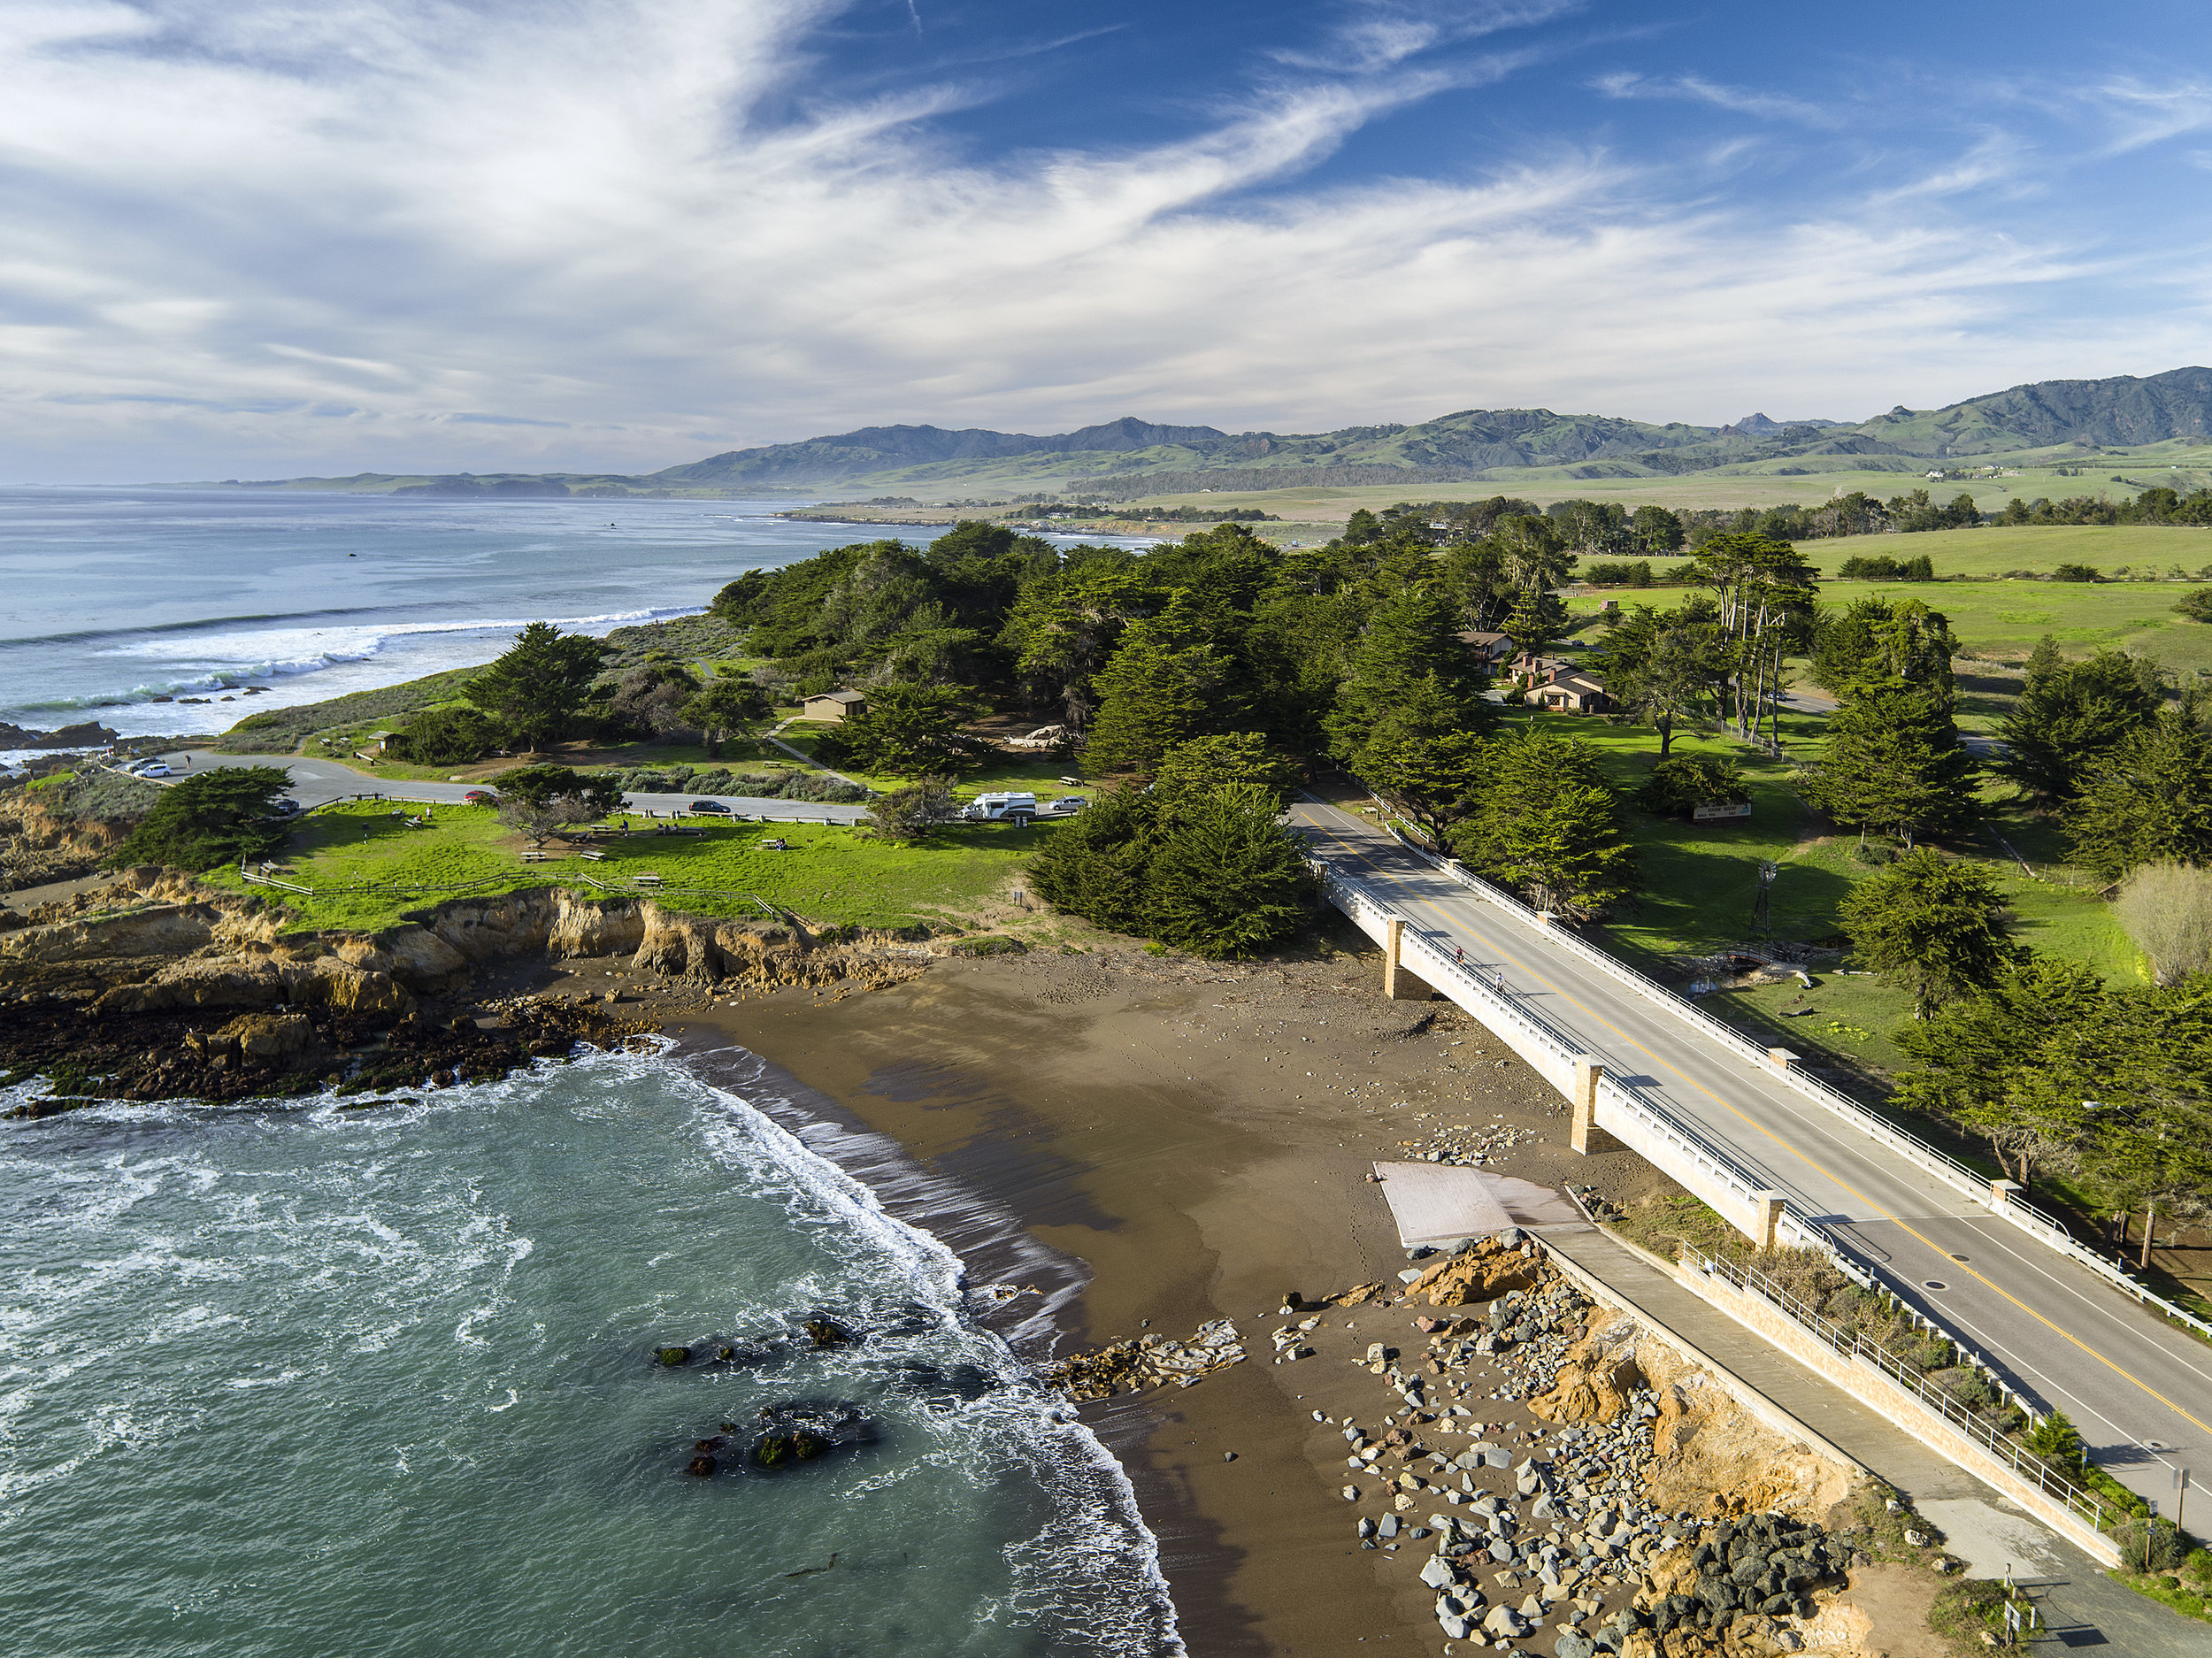 your summer road trip, PLANNED - The Oceanpoint RanchMoonstone BeachCambria, CA3.5 hours from LA/SF via the iconic and beautiful Highway 1